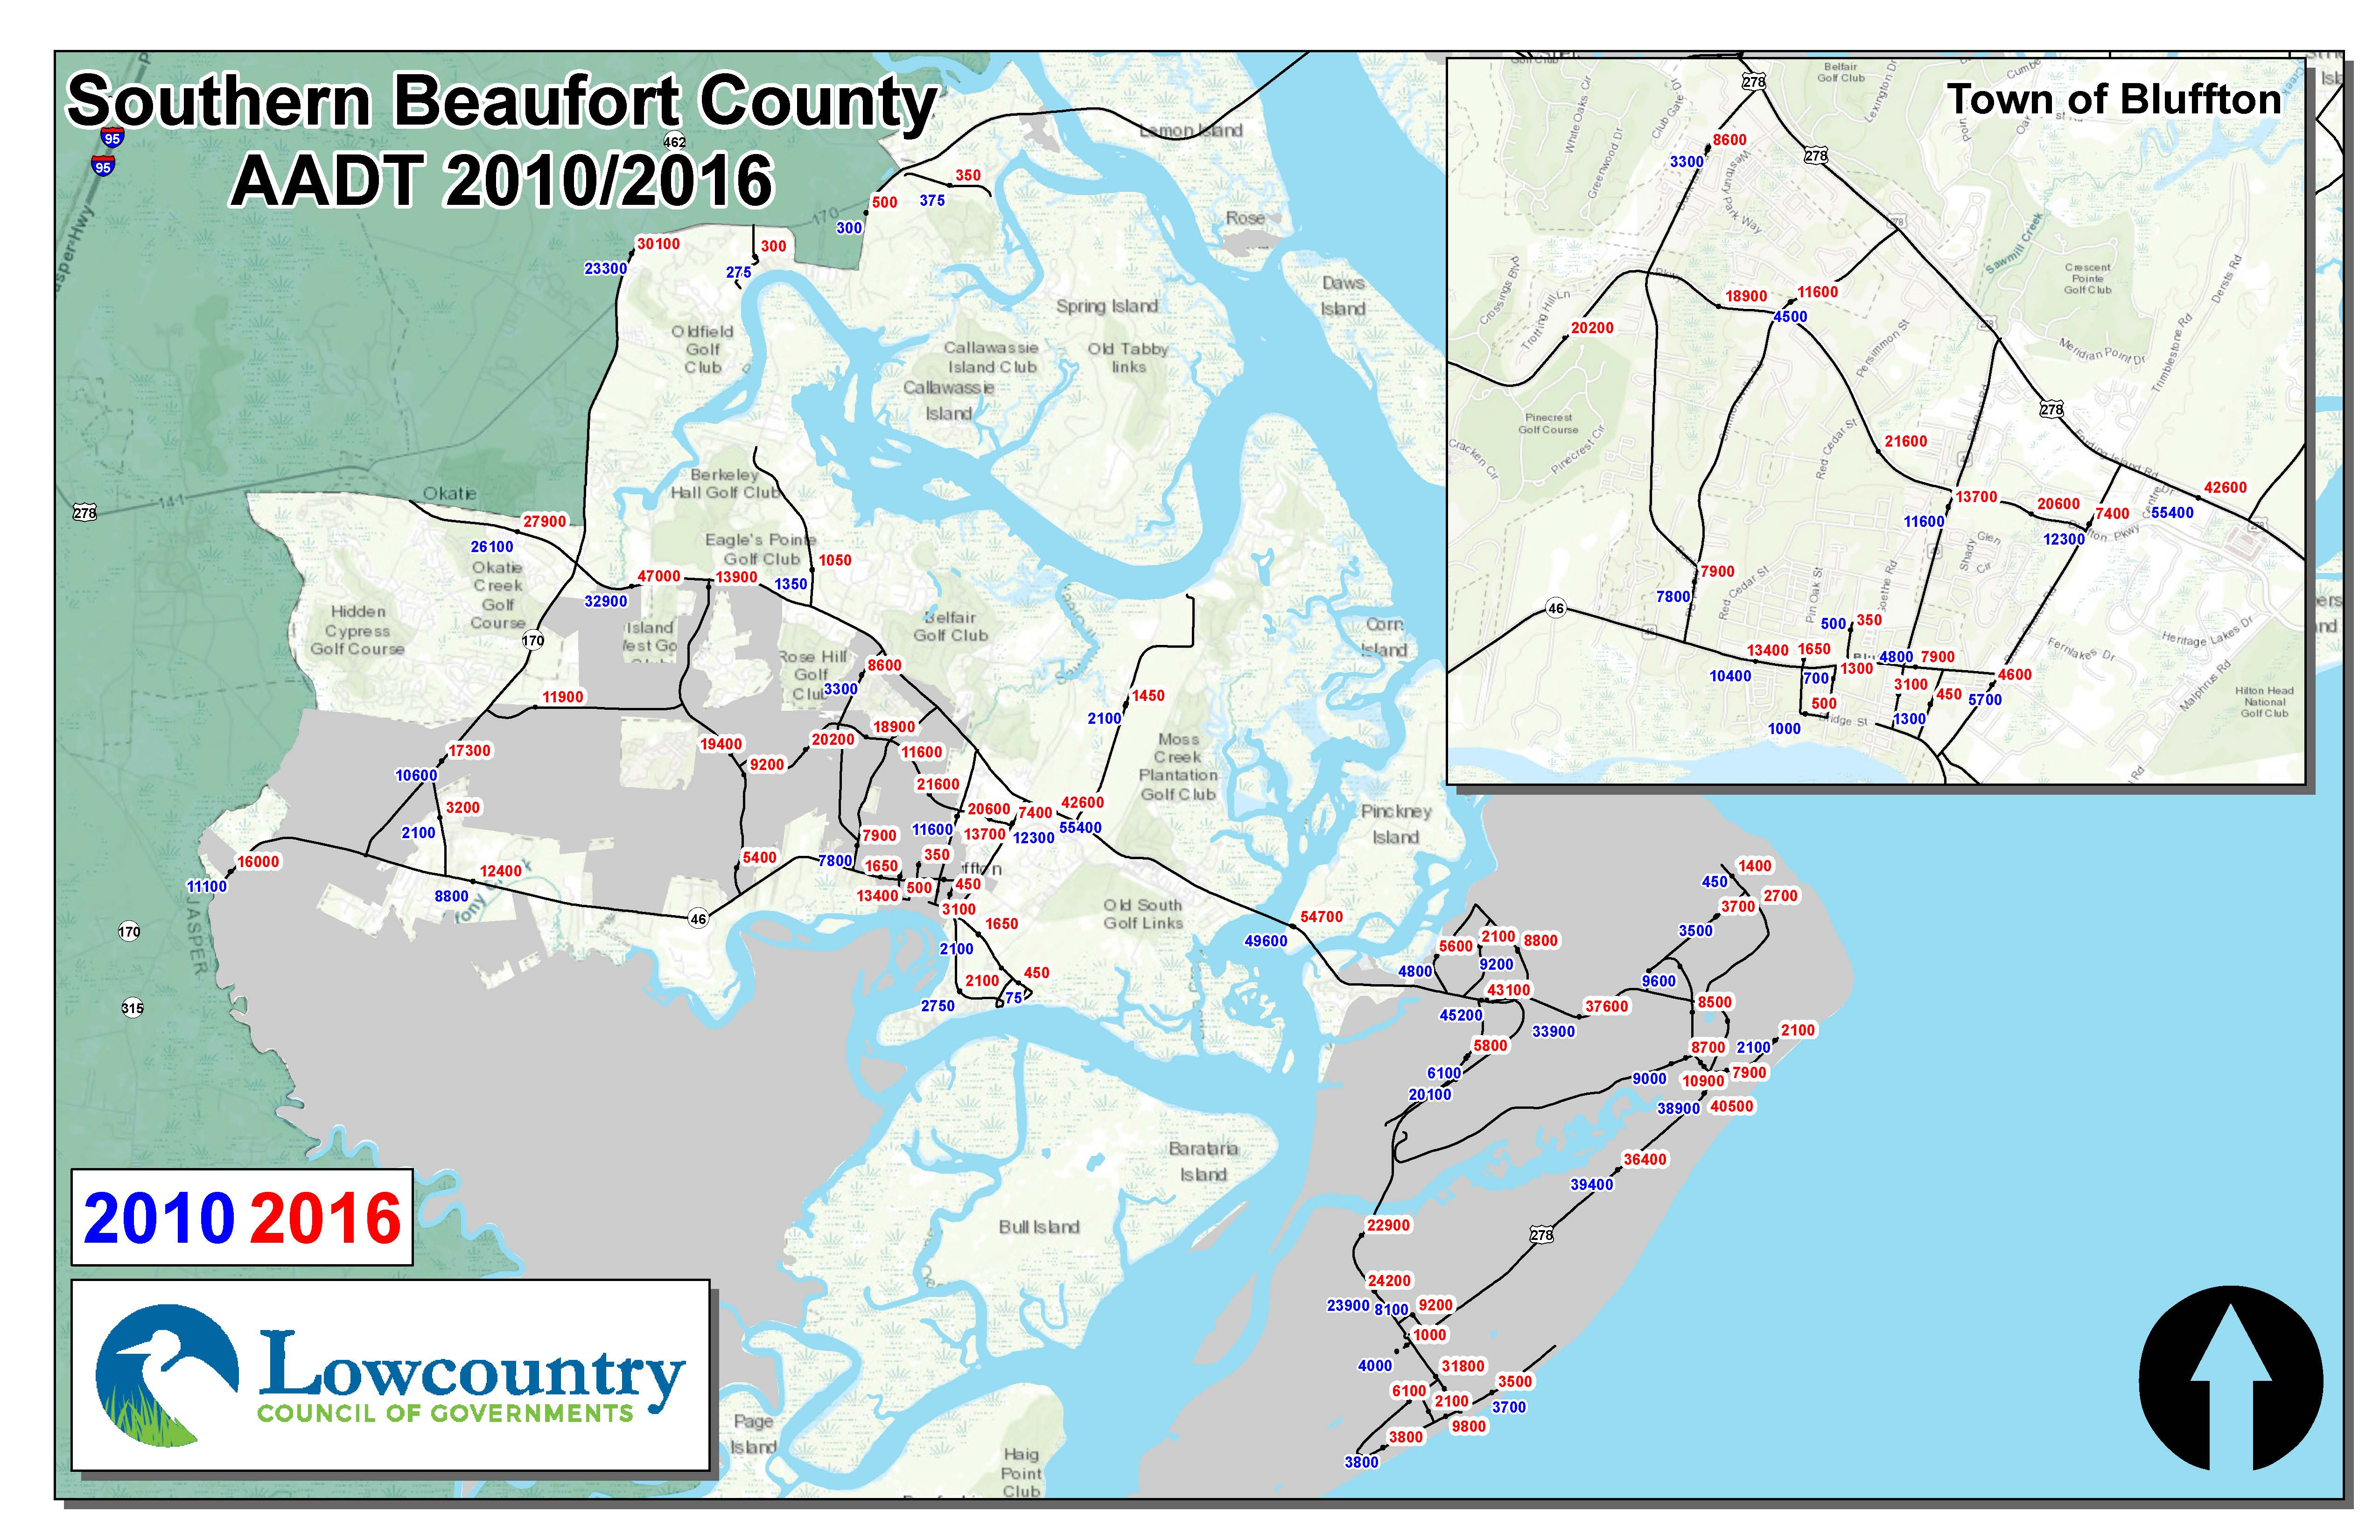 Southern Beaufort 2014 Traffic Counts